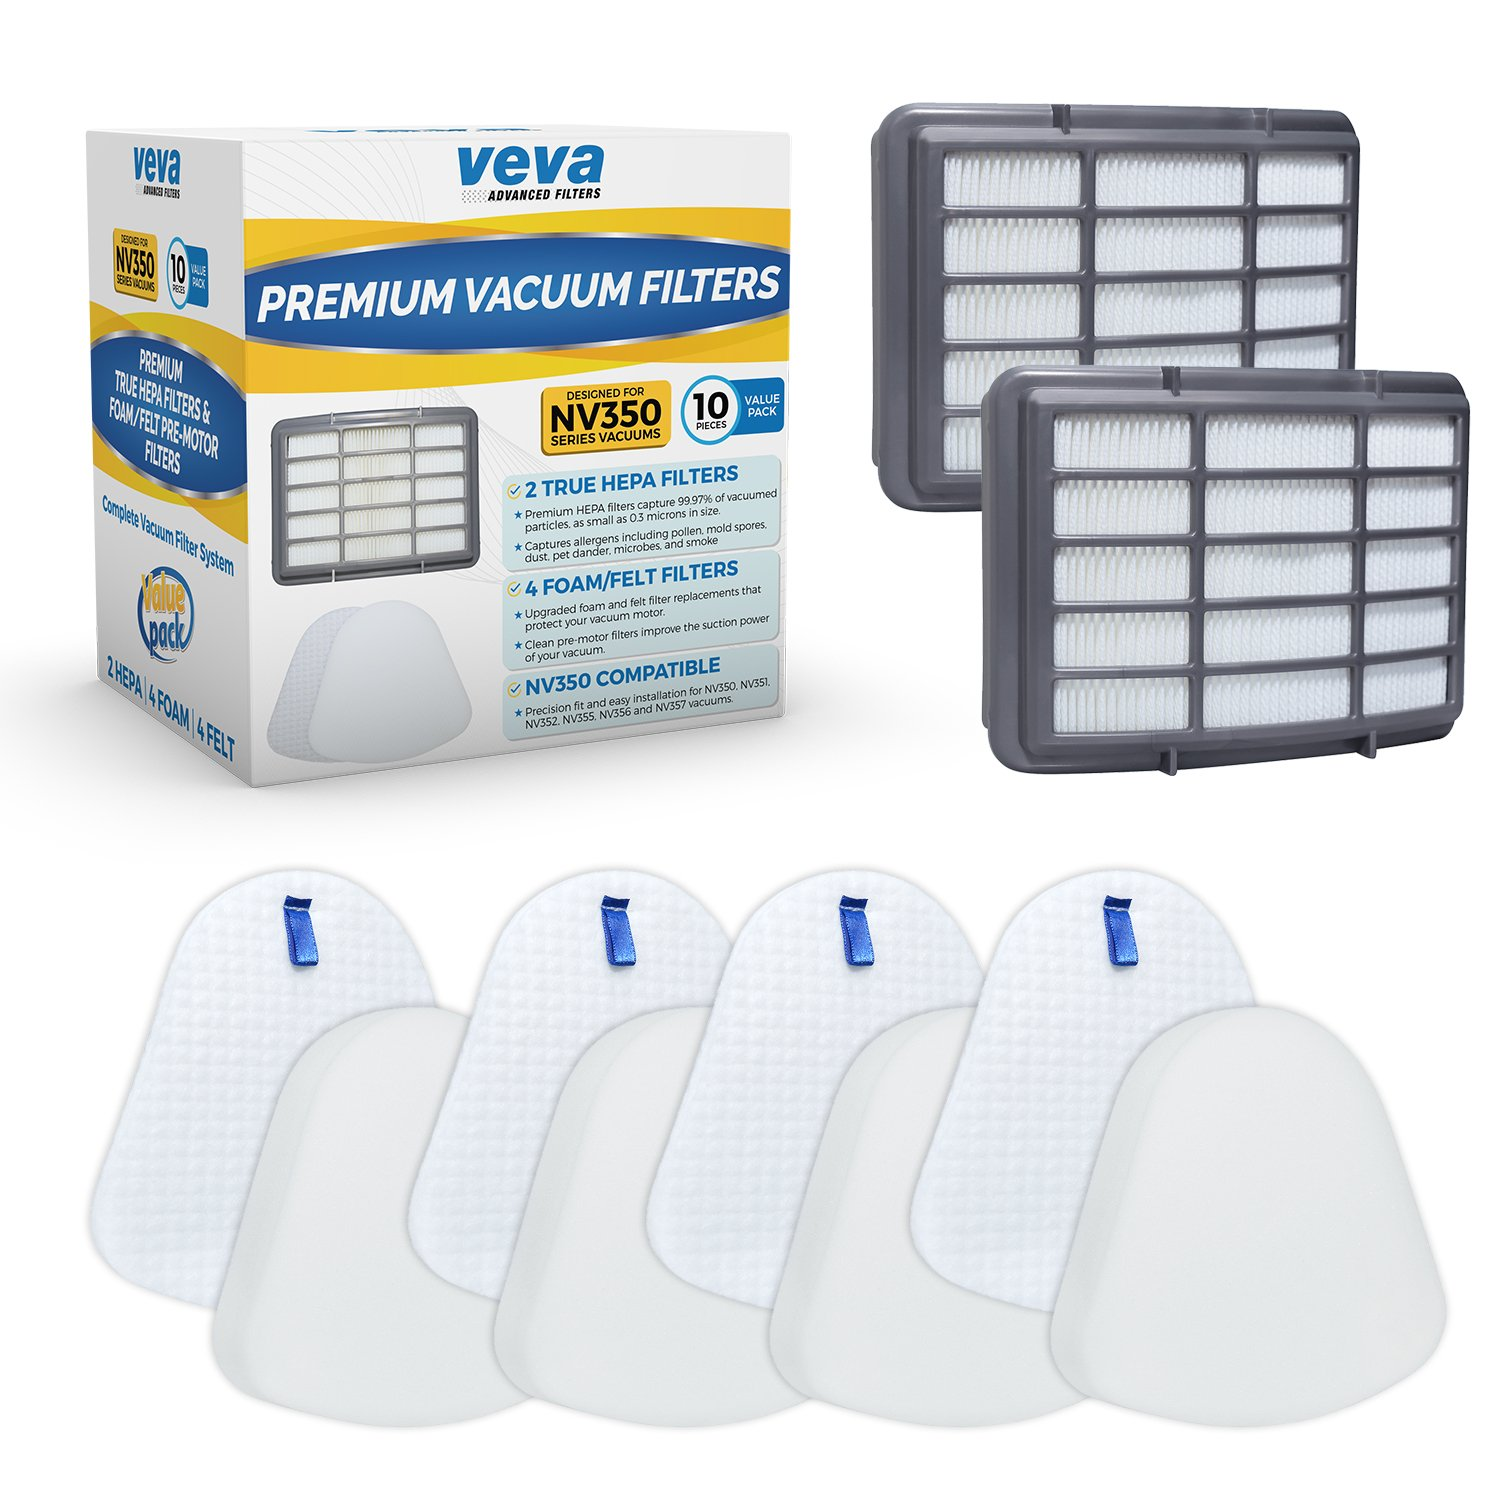 VEVA Complete Premium Vacuum Filter Set Including 2 HEPA, 4 Foam, 4 Felt Filters 10 Pieces Total for Shark Navigator Lift Away Model NV350, 351, 352, 355, 356, 357, 358, 360, 370, 391, UV440, 490, 540